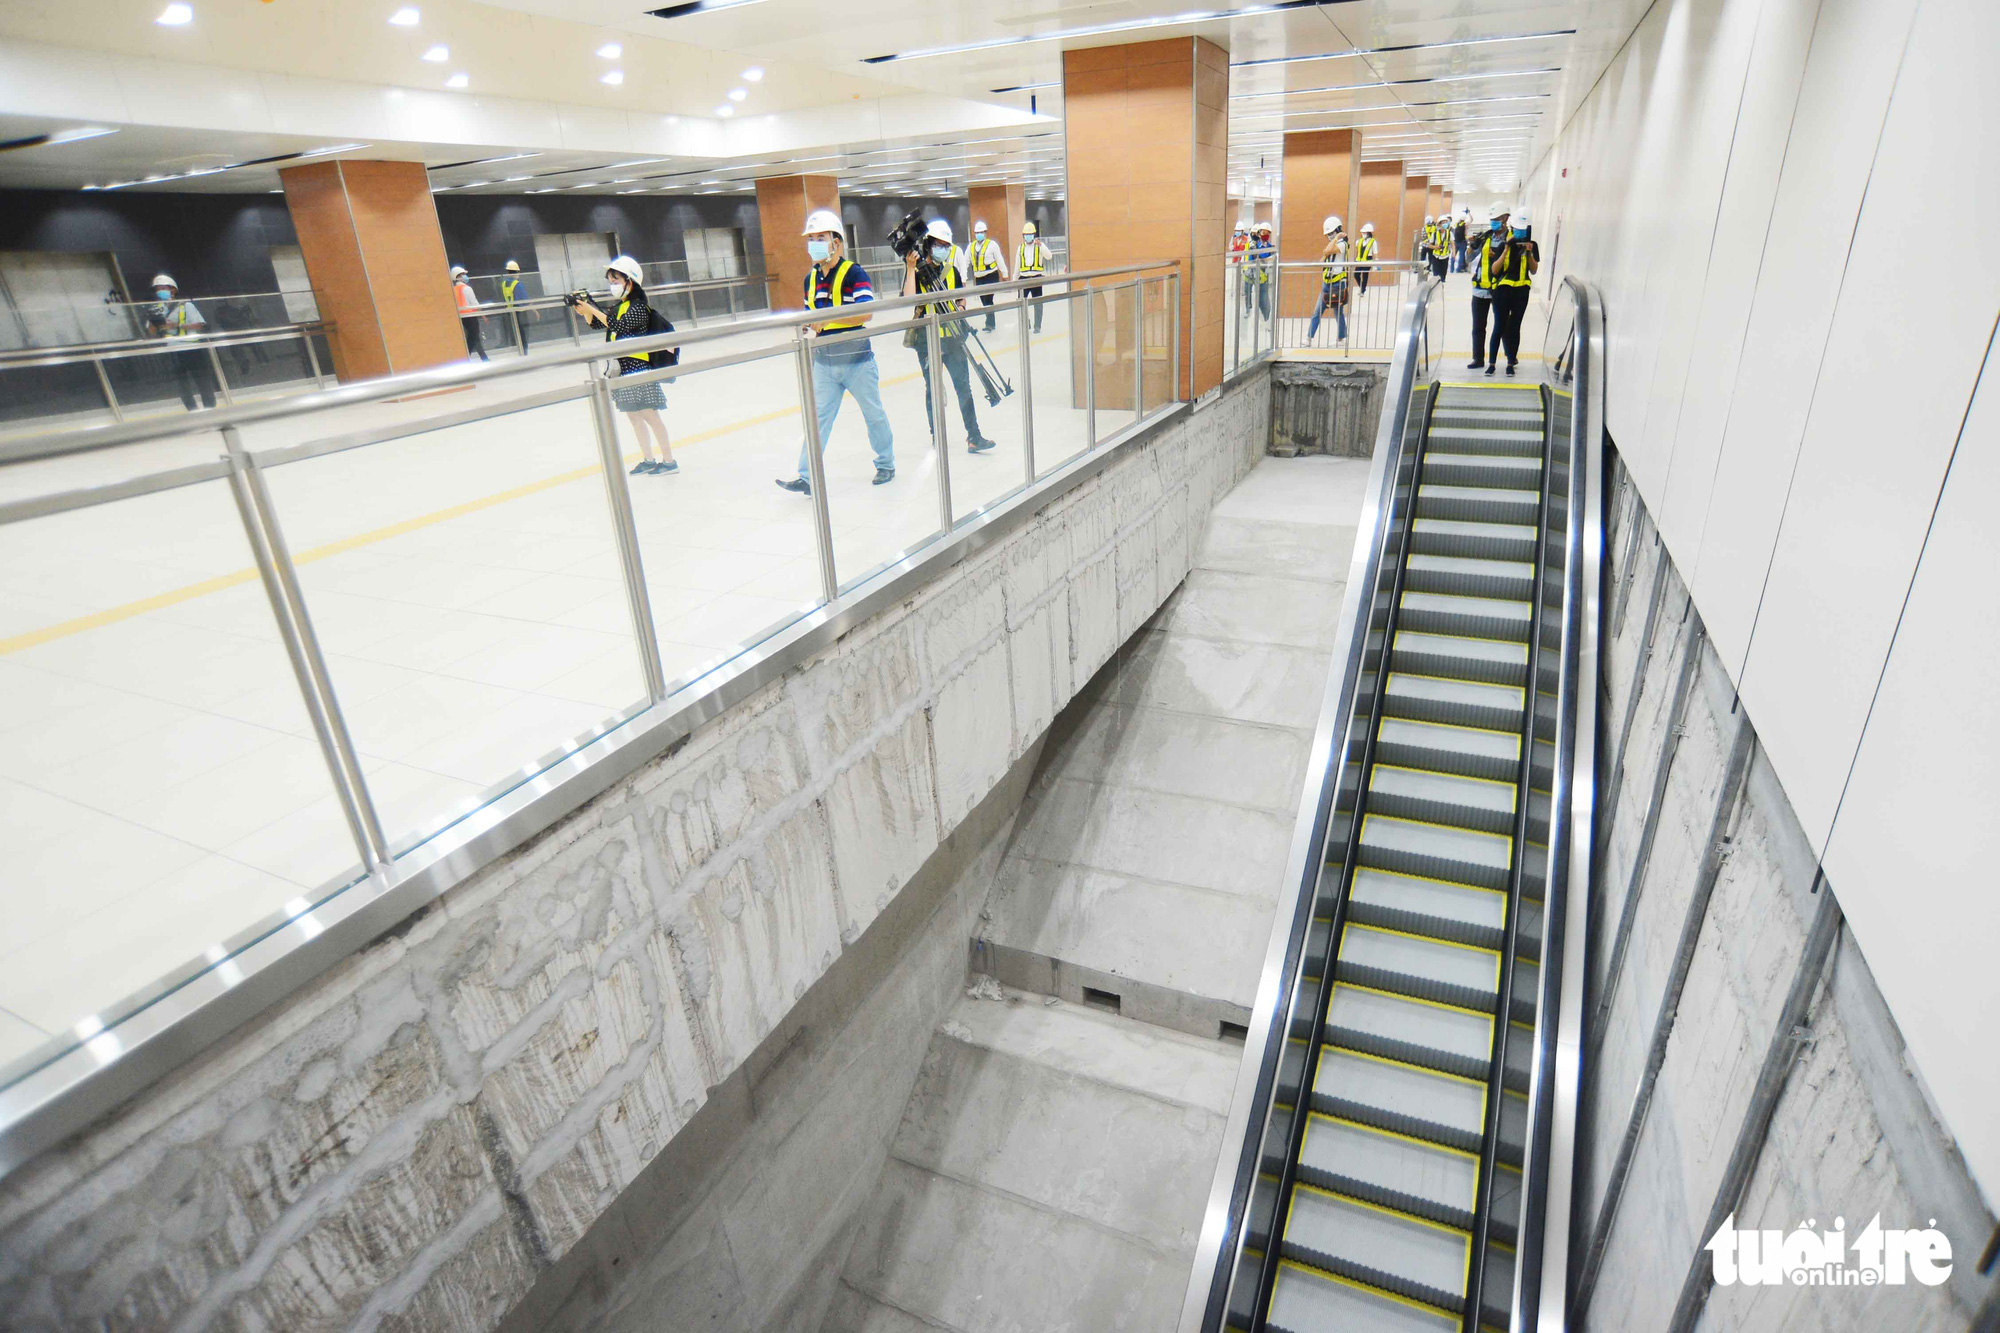 Construction workers finalize floor B1 of the Municipal Theater Terminal of Ho Chi Minh City's metro line No. 1 project in District 1. Photo: Quang Dinh / Tuoi Tre